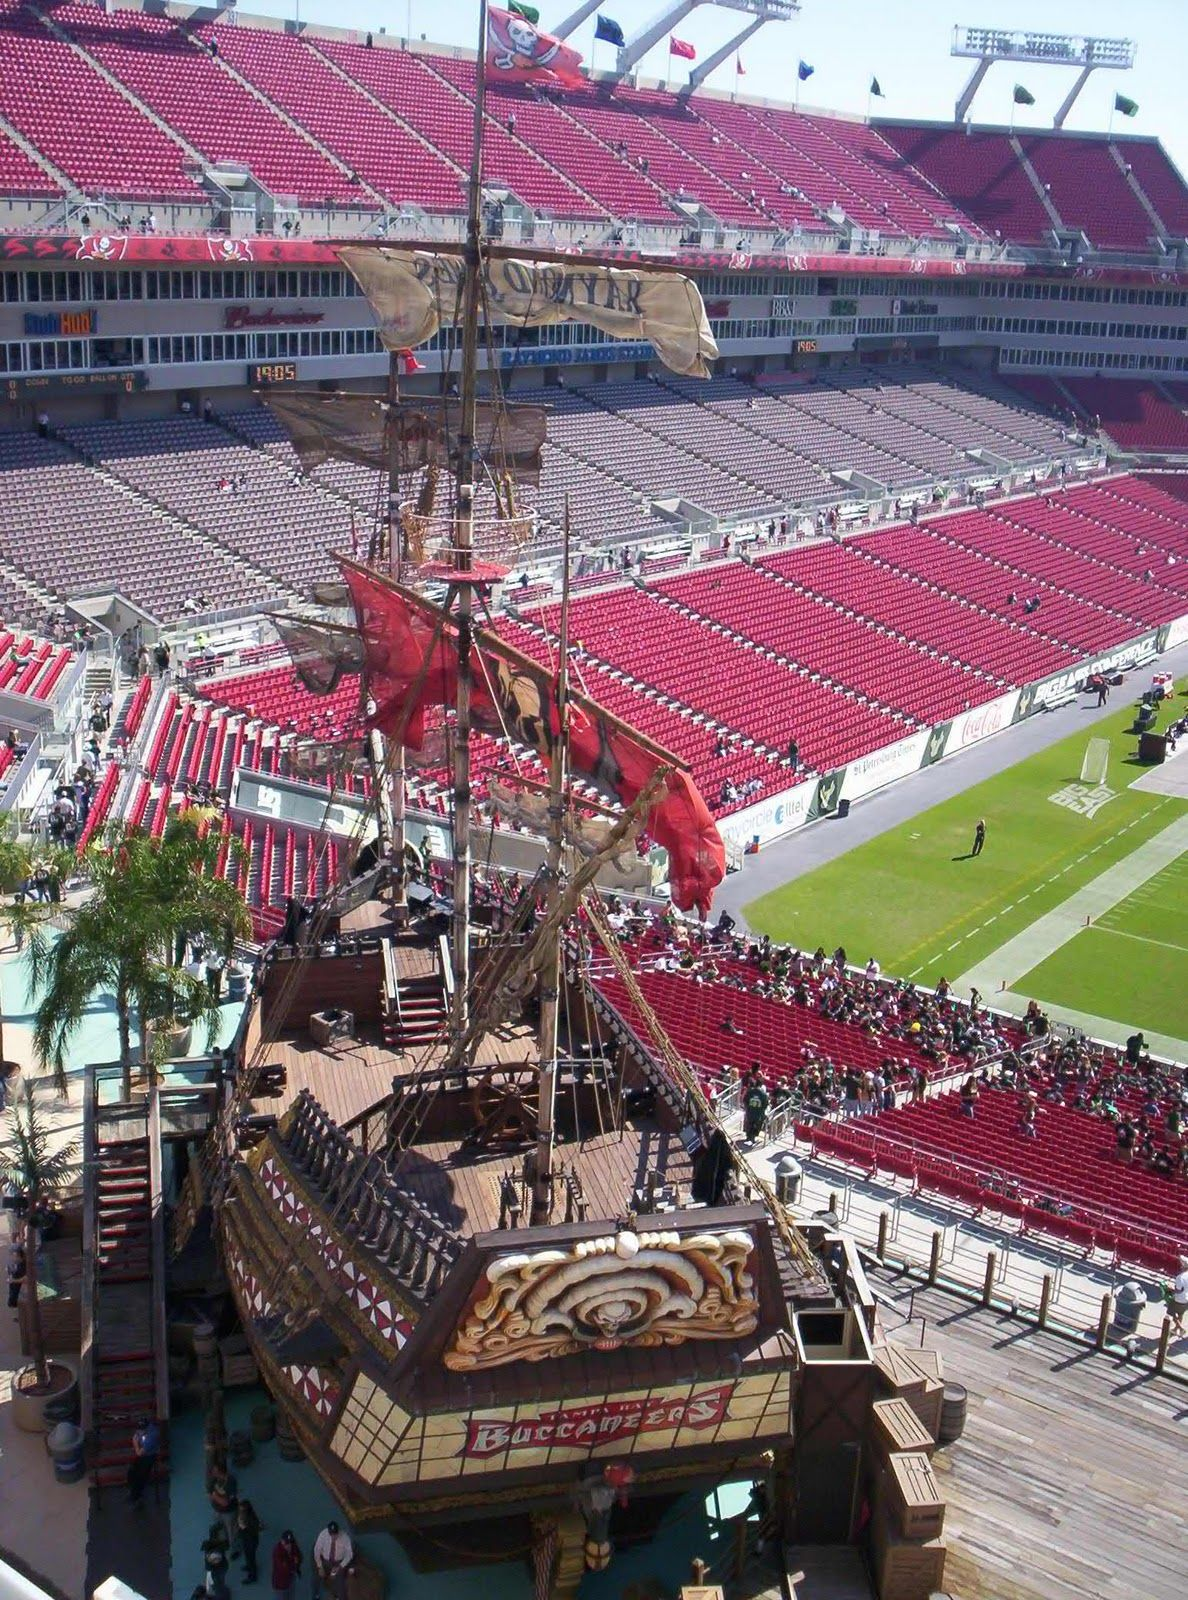 my thoughts random and related bearcats return to tampa bay tampa bay buccaneers football tampa bay bucs tampa bay buccaneers tampa bay buccaneers